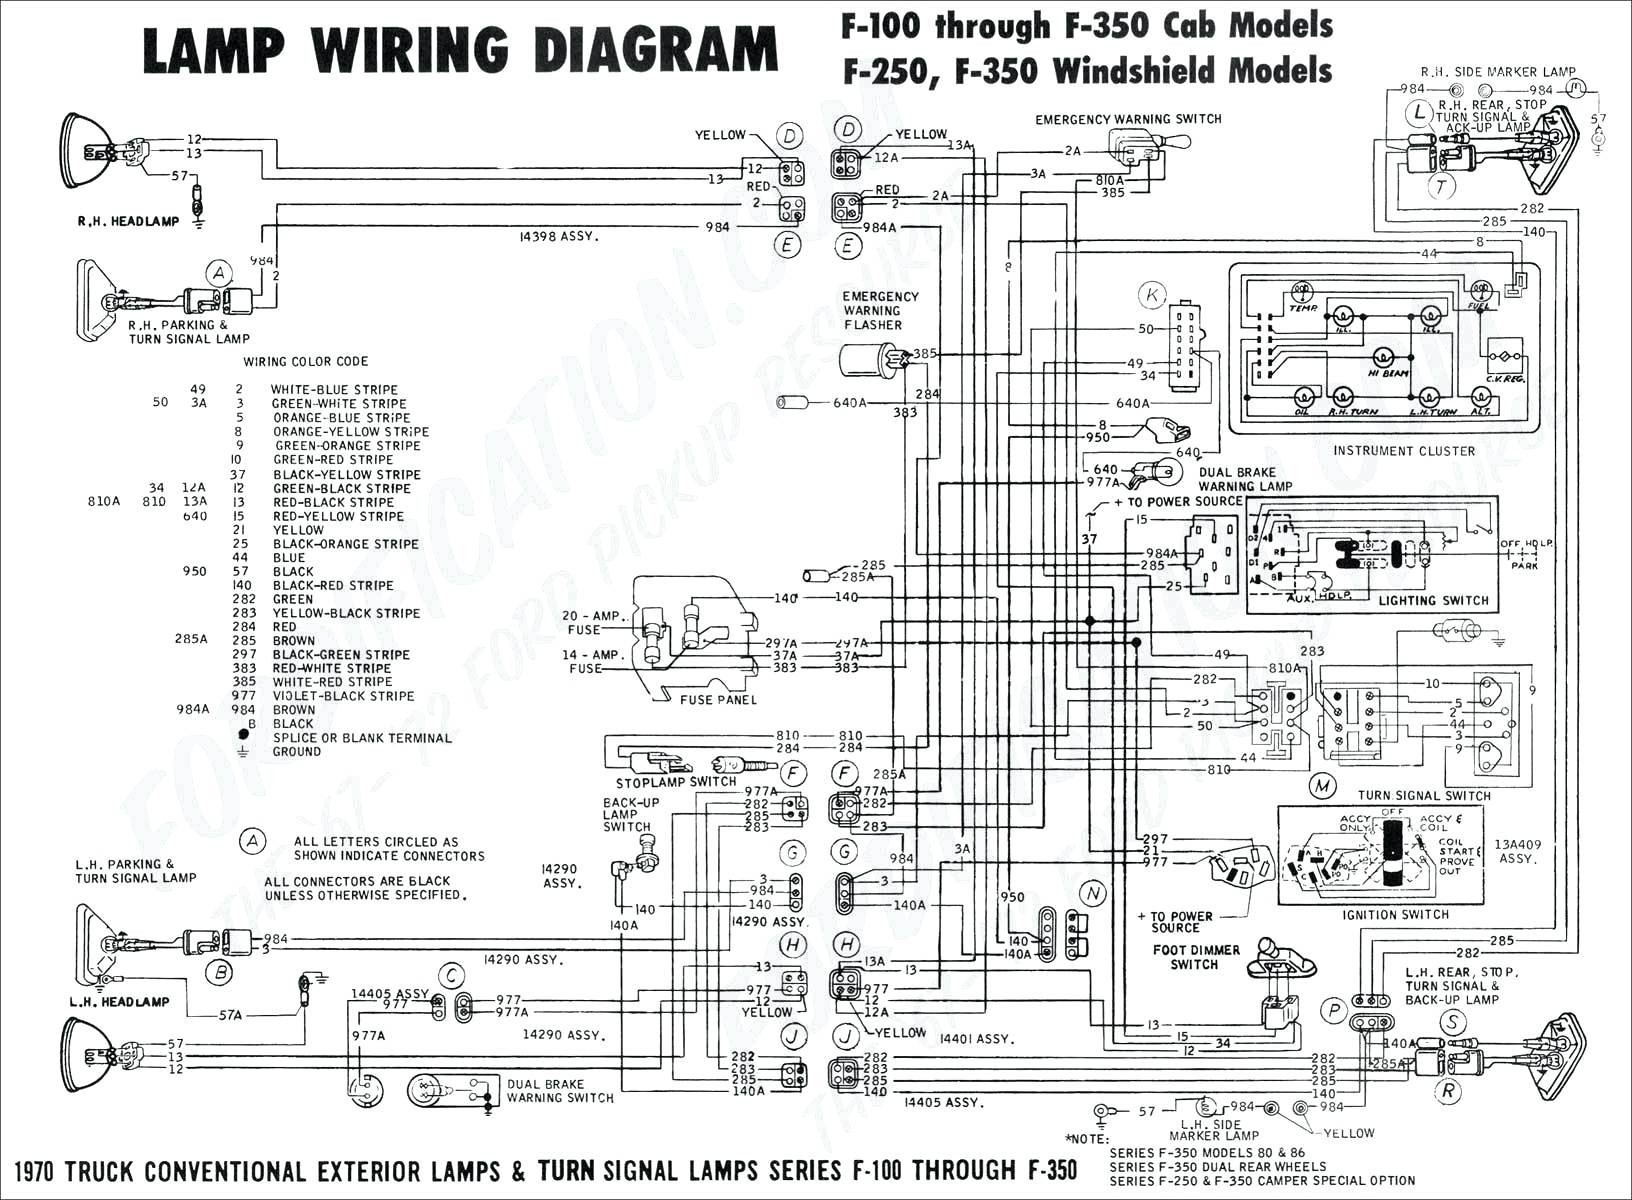 2002 Civic Engine Diagram Honda Civic Wiring Schematics Wiring Diagram Datasource Of 2002 Civic Engine Diagram